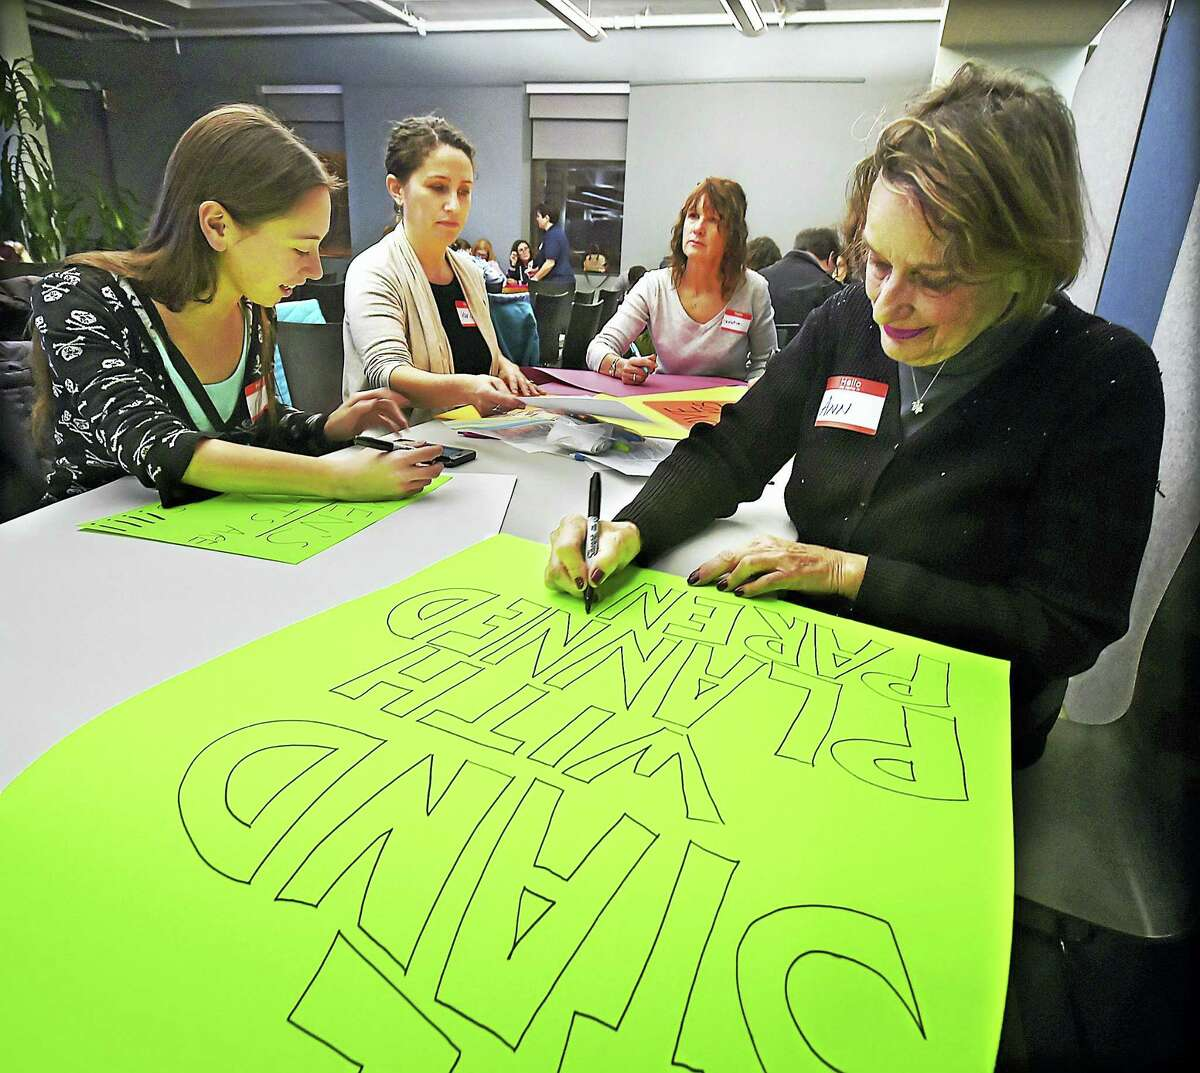 Milford resident Ann Carter, right, and members of the Connecticut chapter of the National Organization for Women attend a meeting at the New Haven Free Public Library Thursday preparing for the Women's March on Washington Jan. 21.